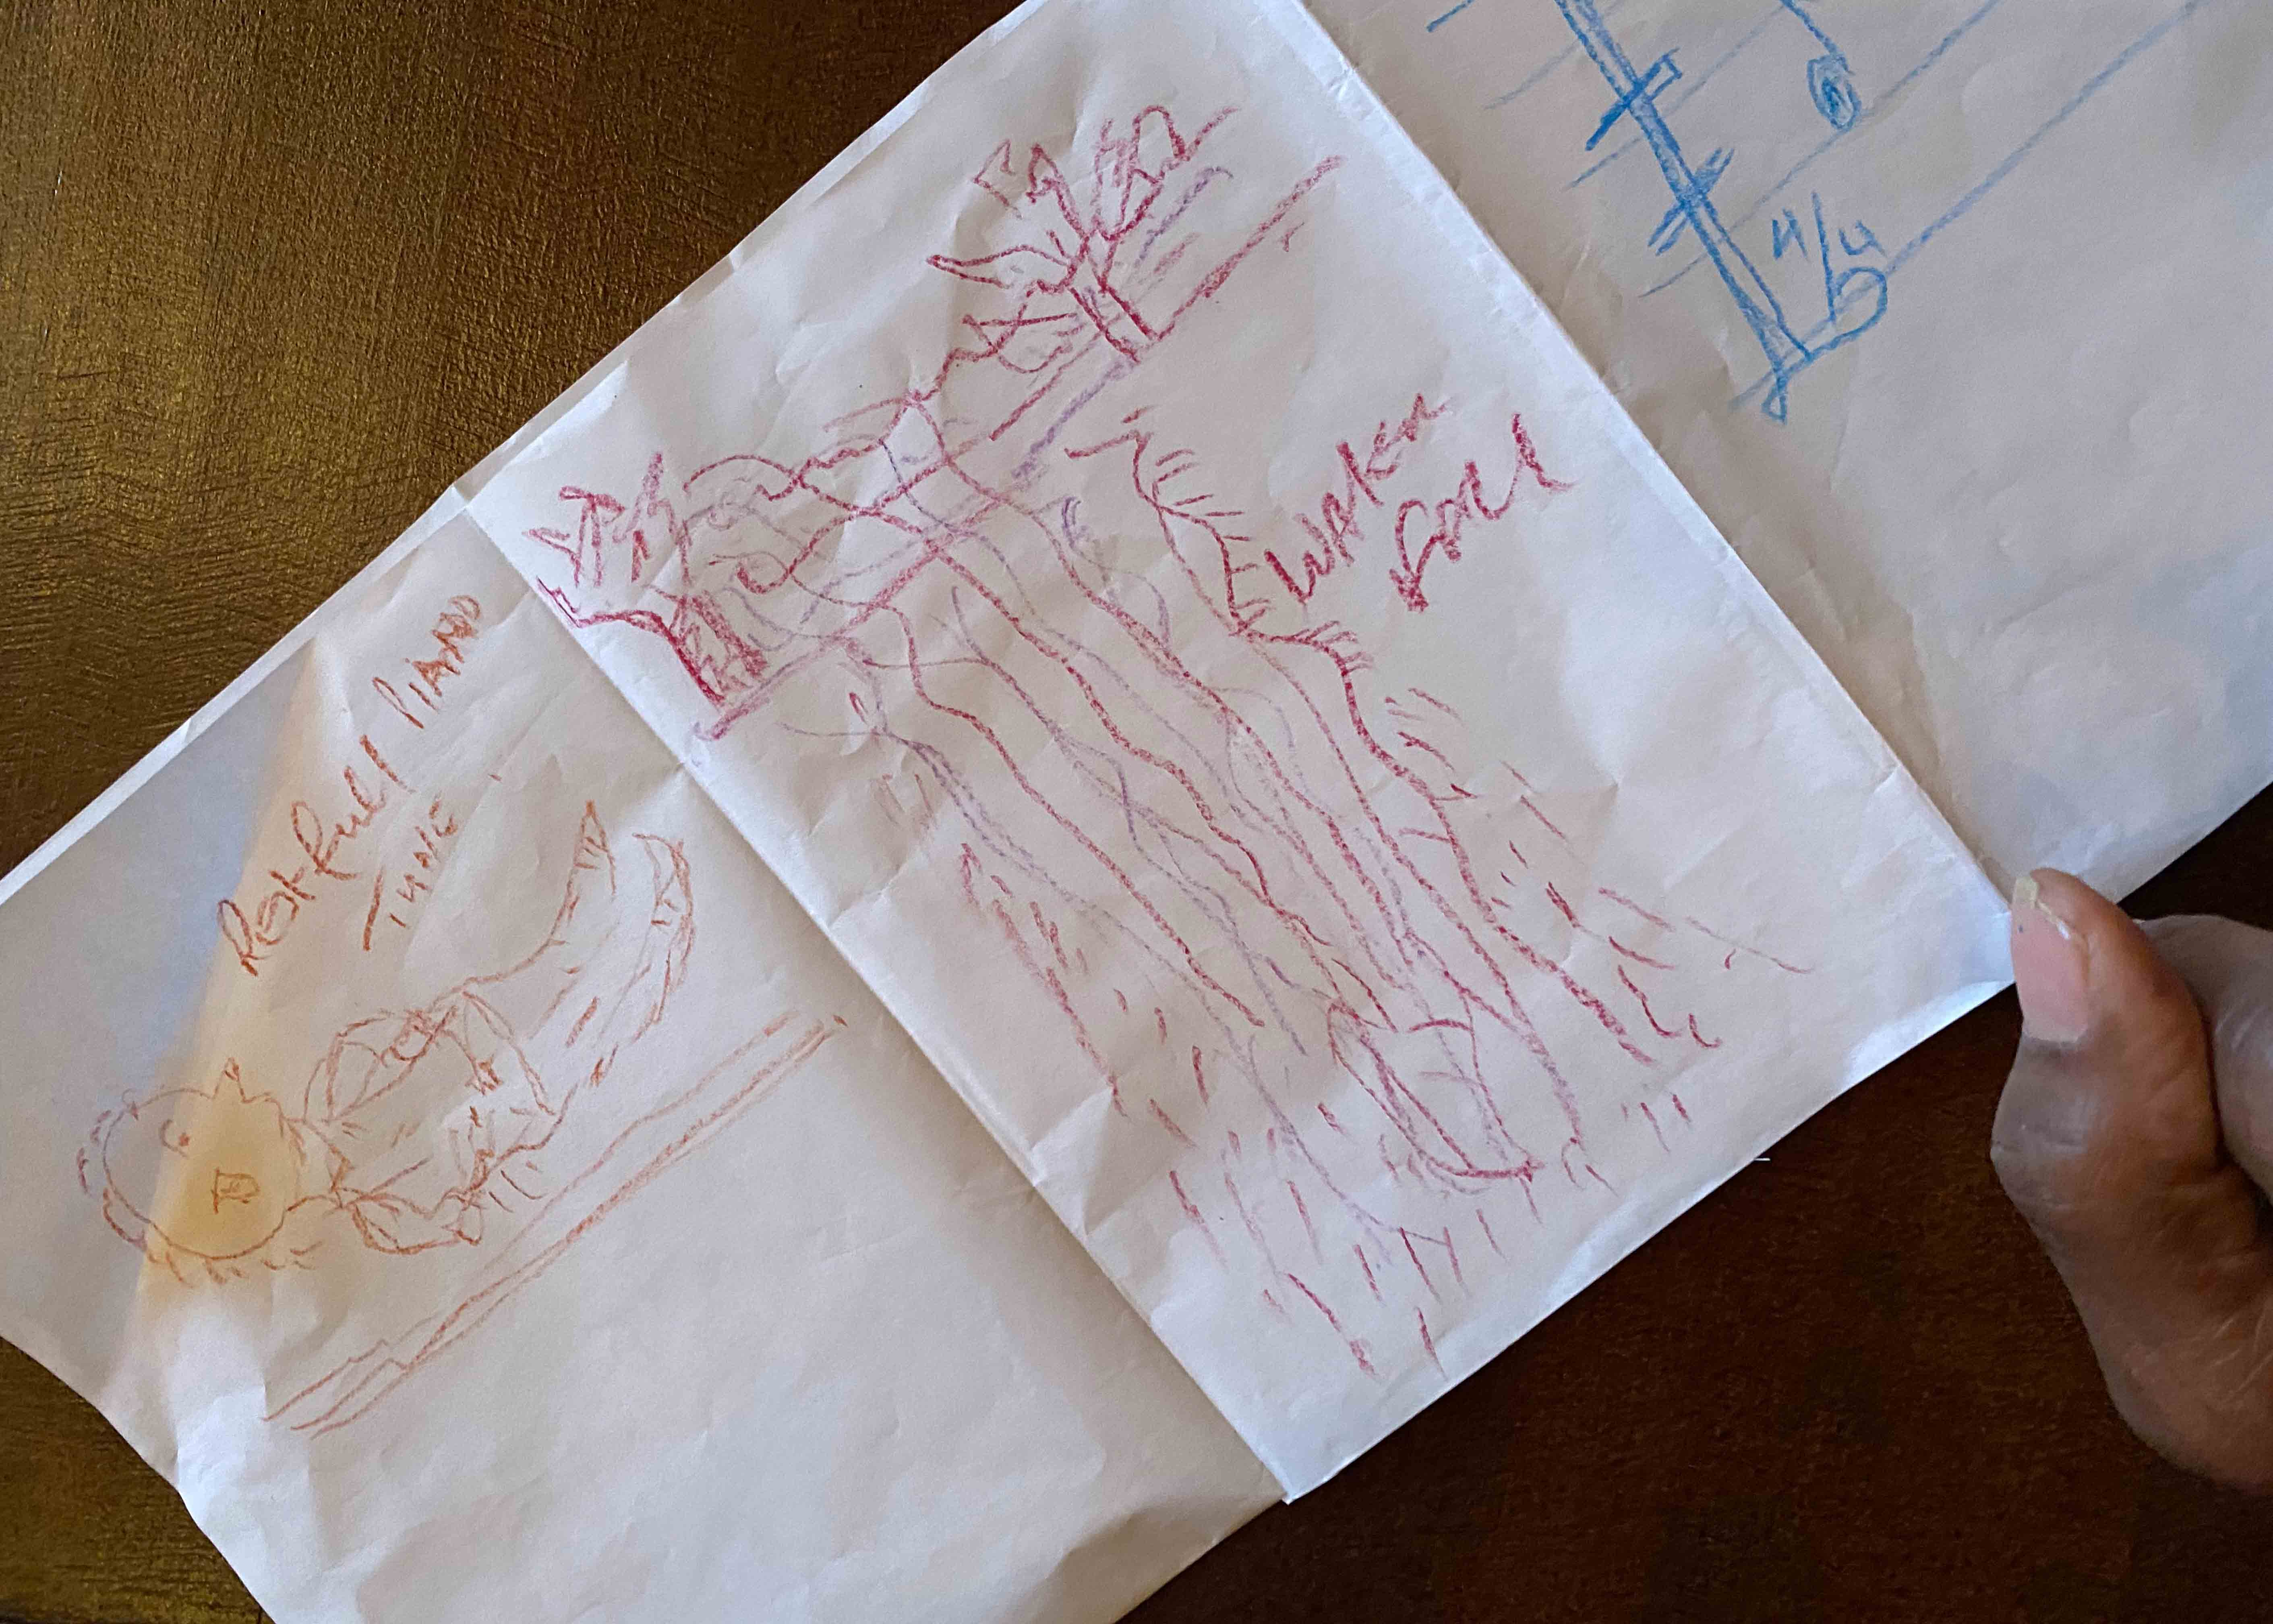 Detail of drawings on a folded piece of paper